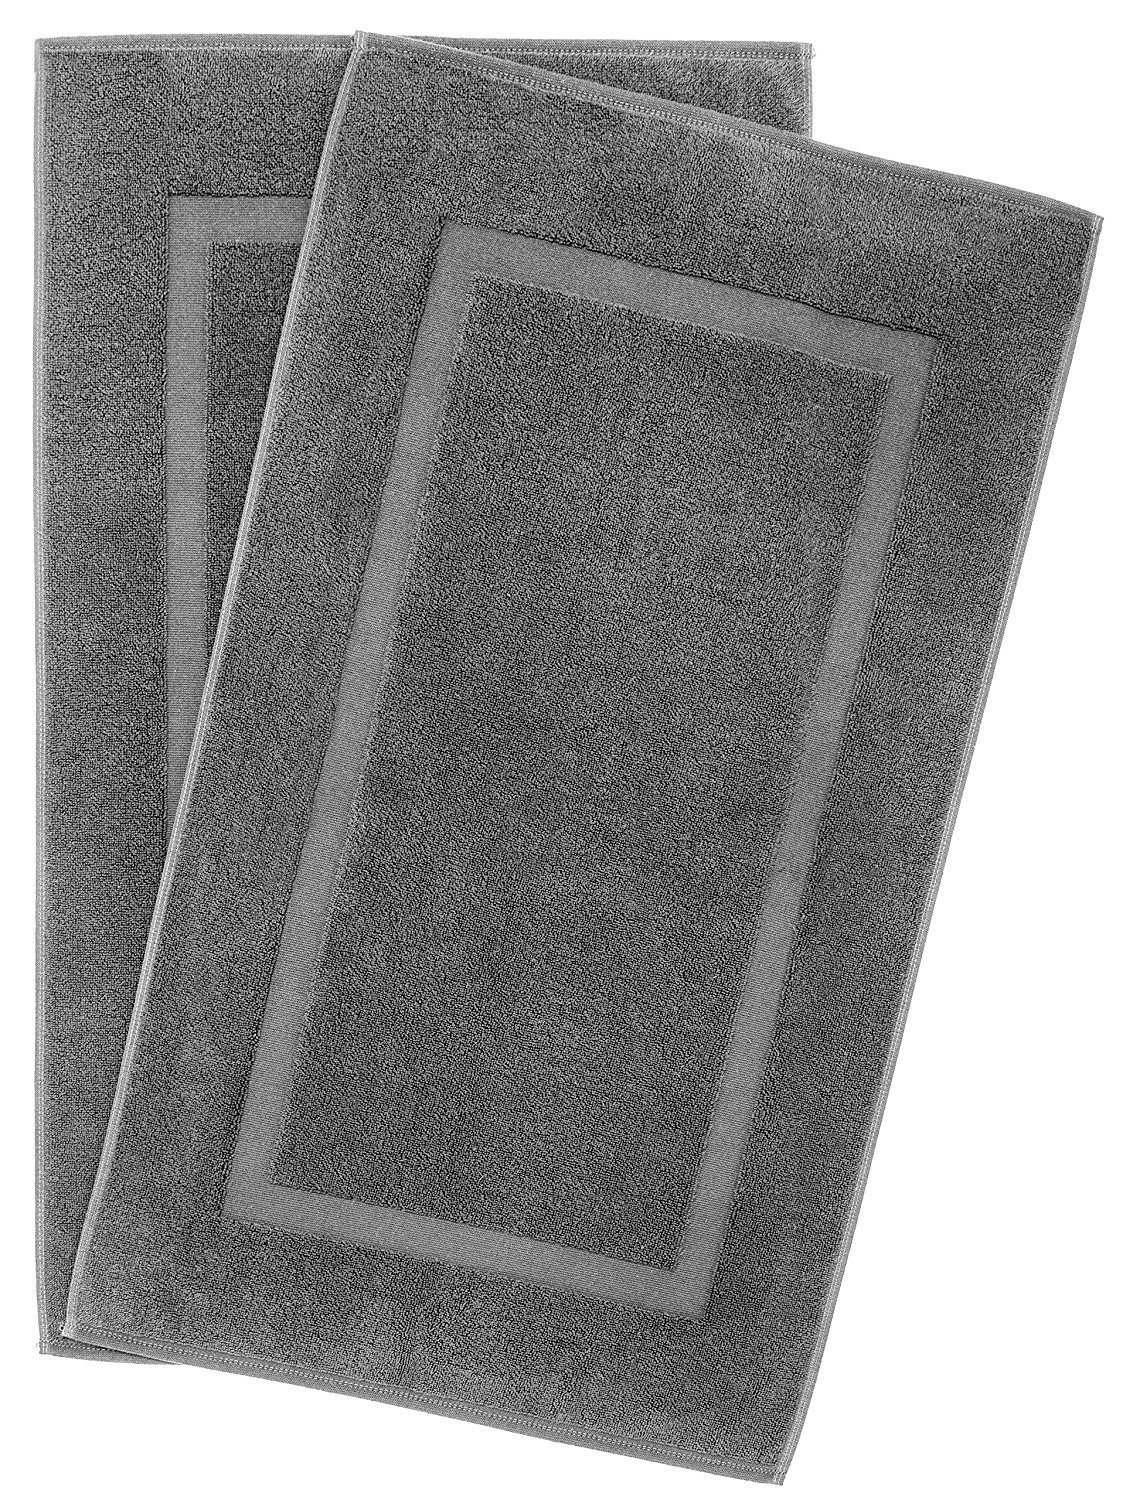 900 GSM Machine Washable 21x34 Inches 2-Pack Banded Bath Mats, Luxury Hotel and Spa Quality, 100% Ring Spun Genuine Cotton, Maximum Softness and Absorbency by United Home Textile, Charcoal Grey